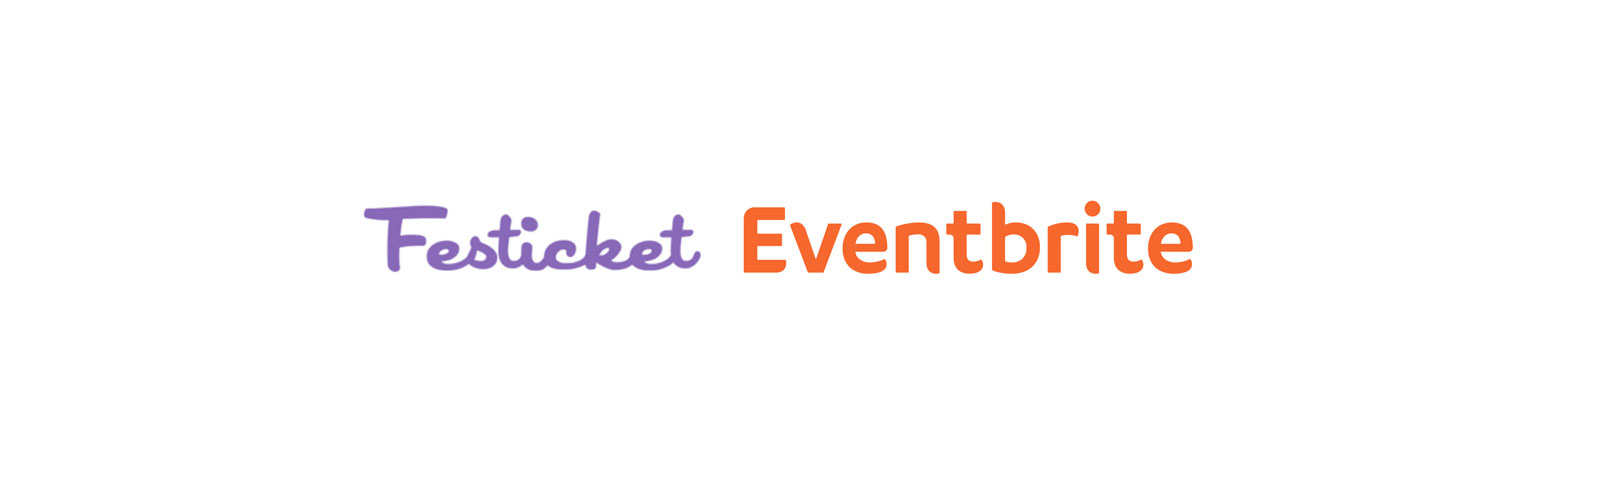 festicket-eventbrite